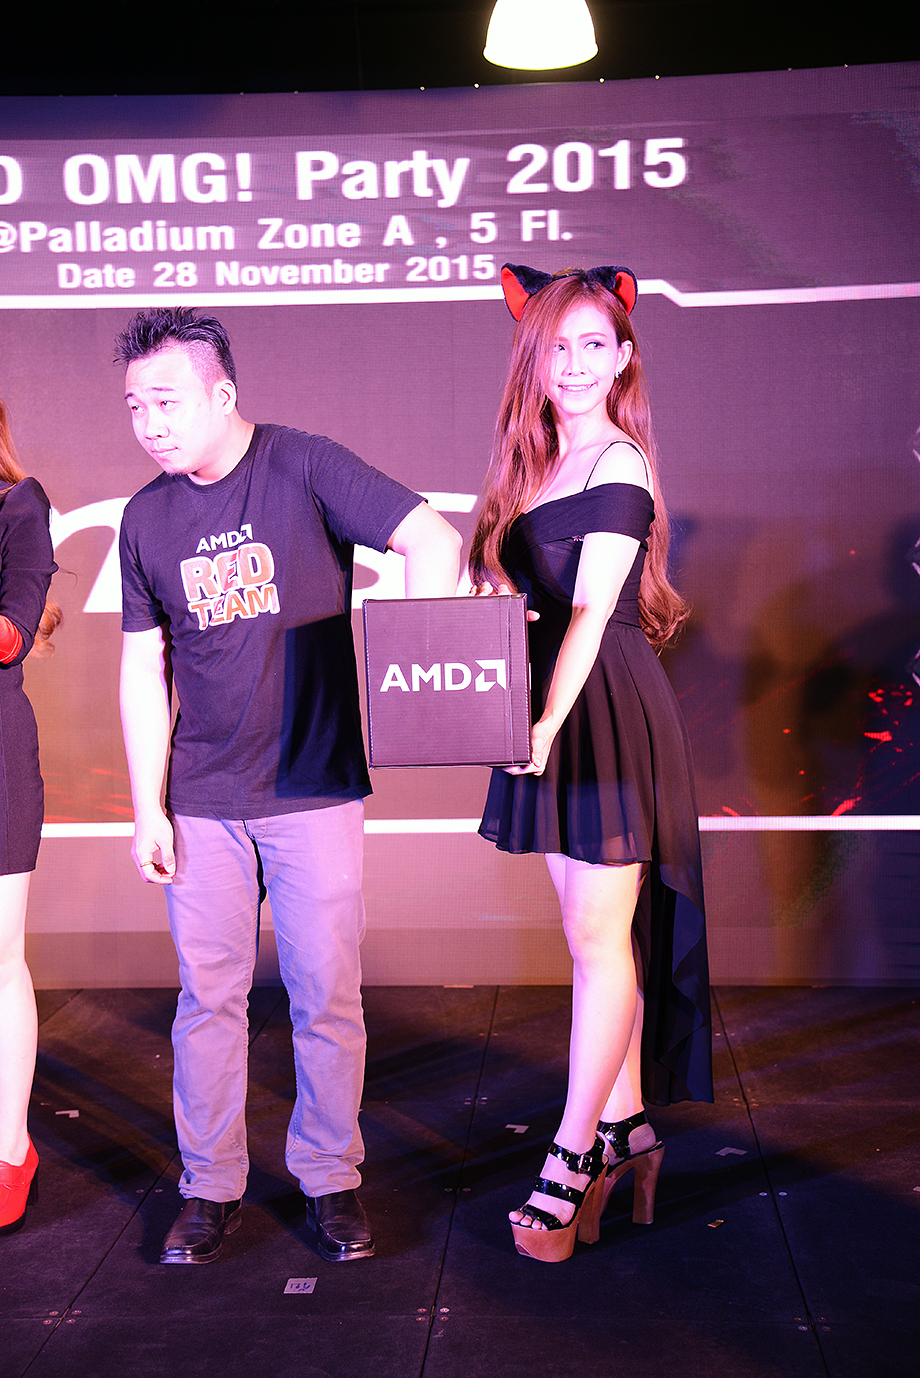 dsc 6815 AMD OMG! Party 2015 (AMD Overclock Modding Gaming Party 2015)